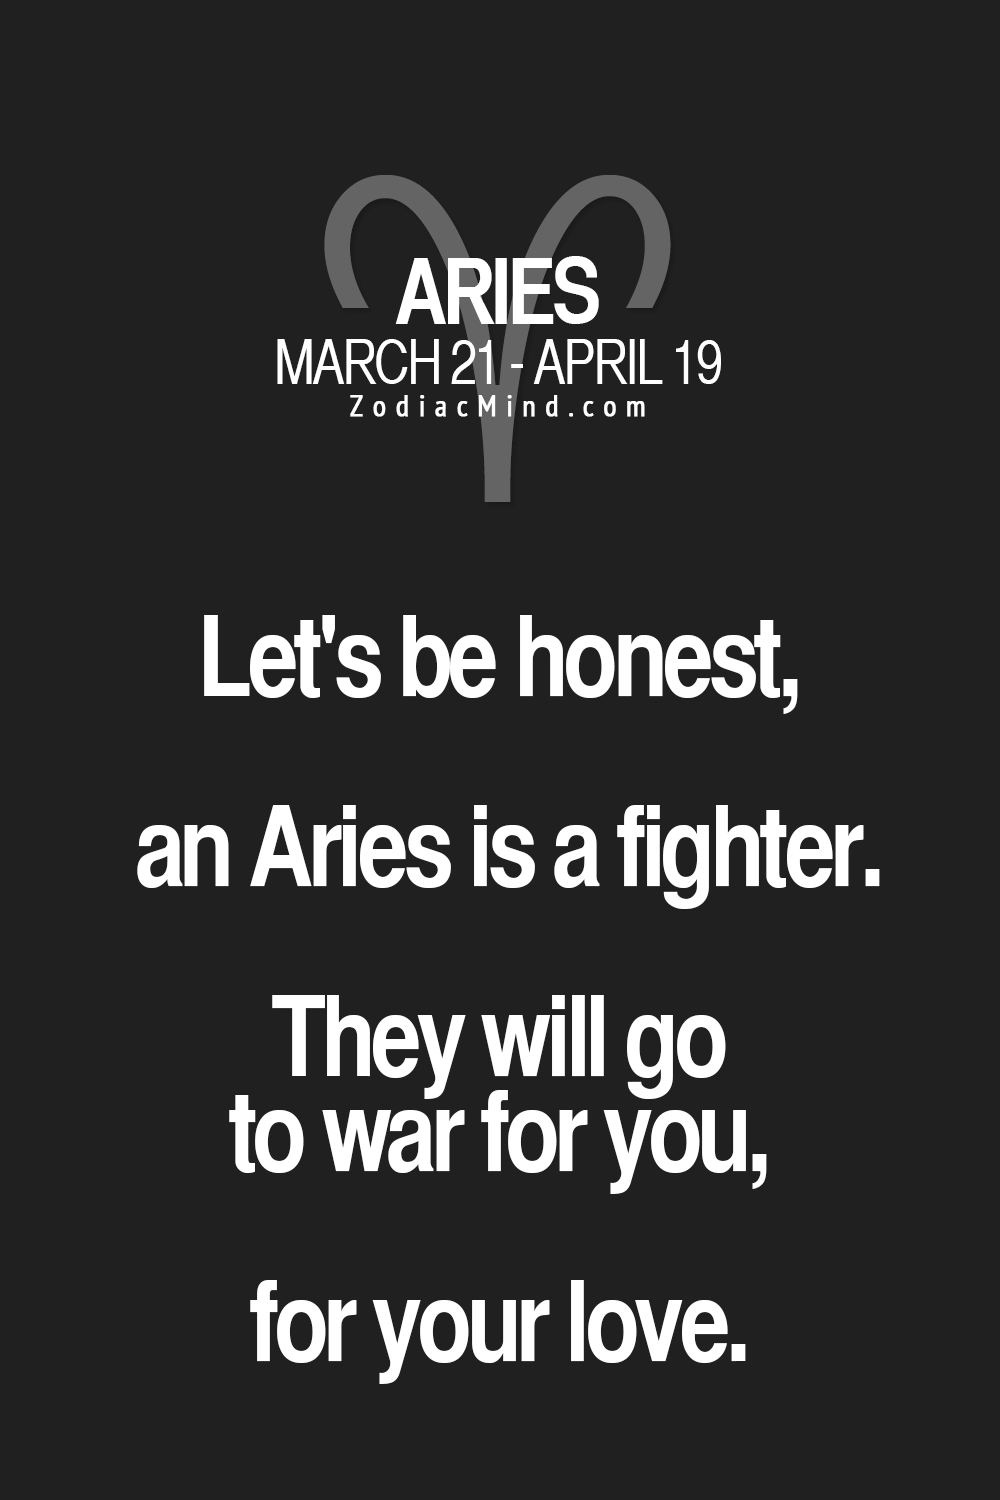 Let's be honest, an Aries is a fighter, They will go to